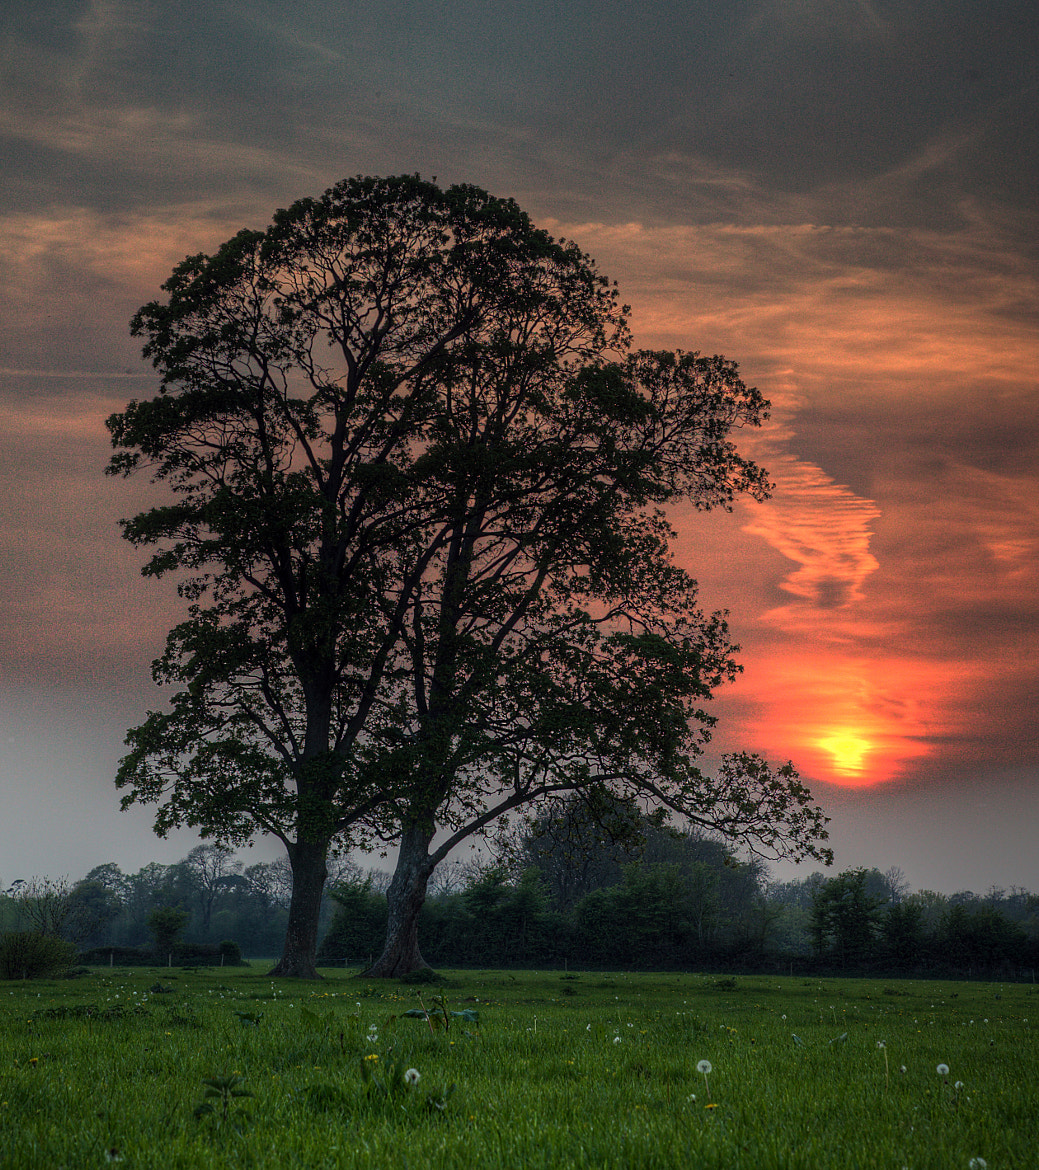 Photograph The Twins - Sunset by Sam  Catchesides on 500px